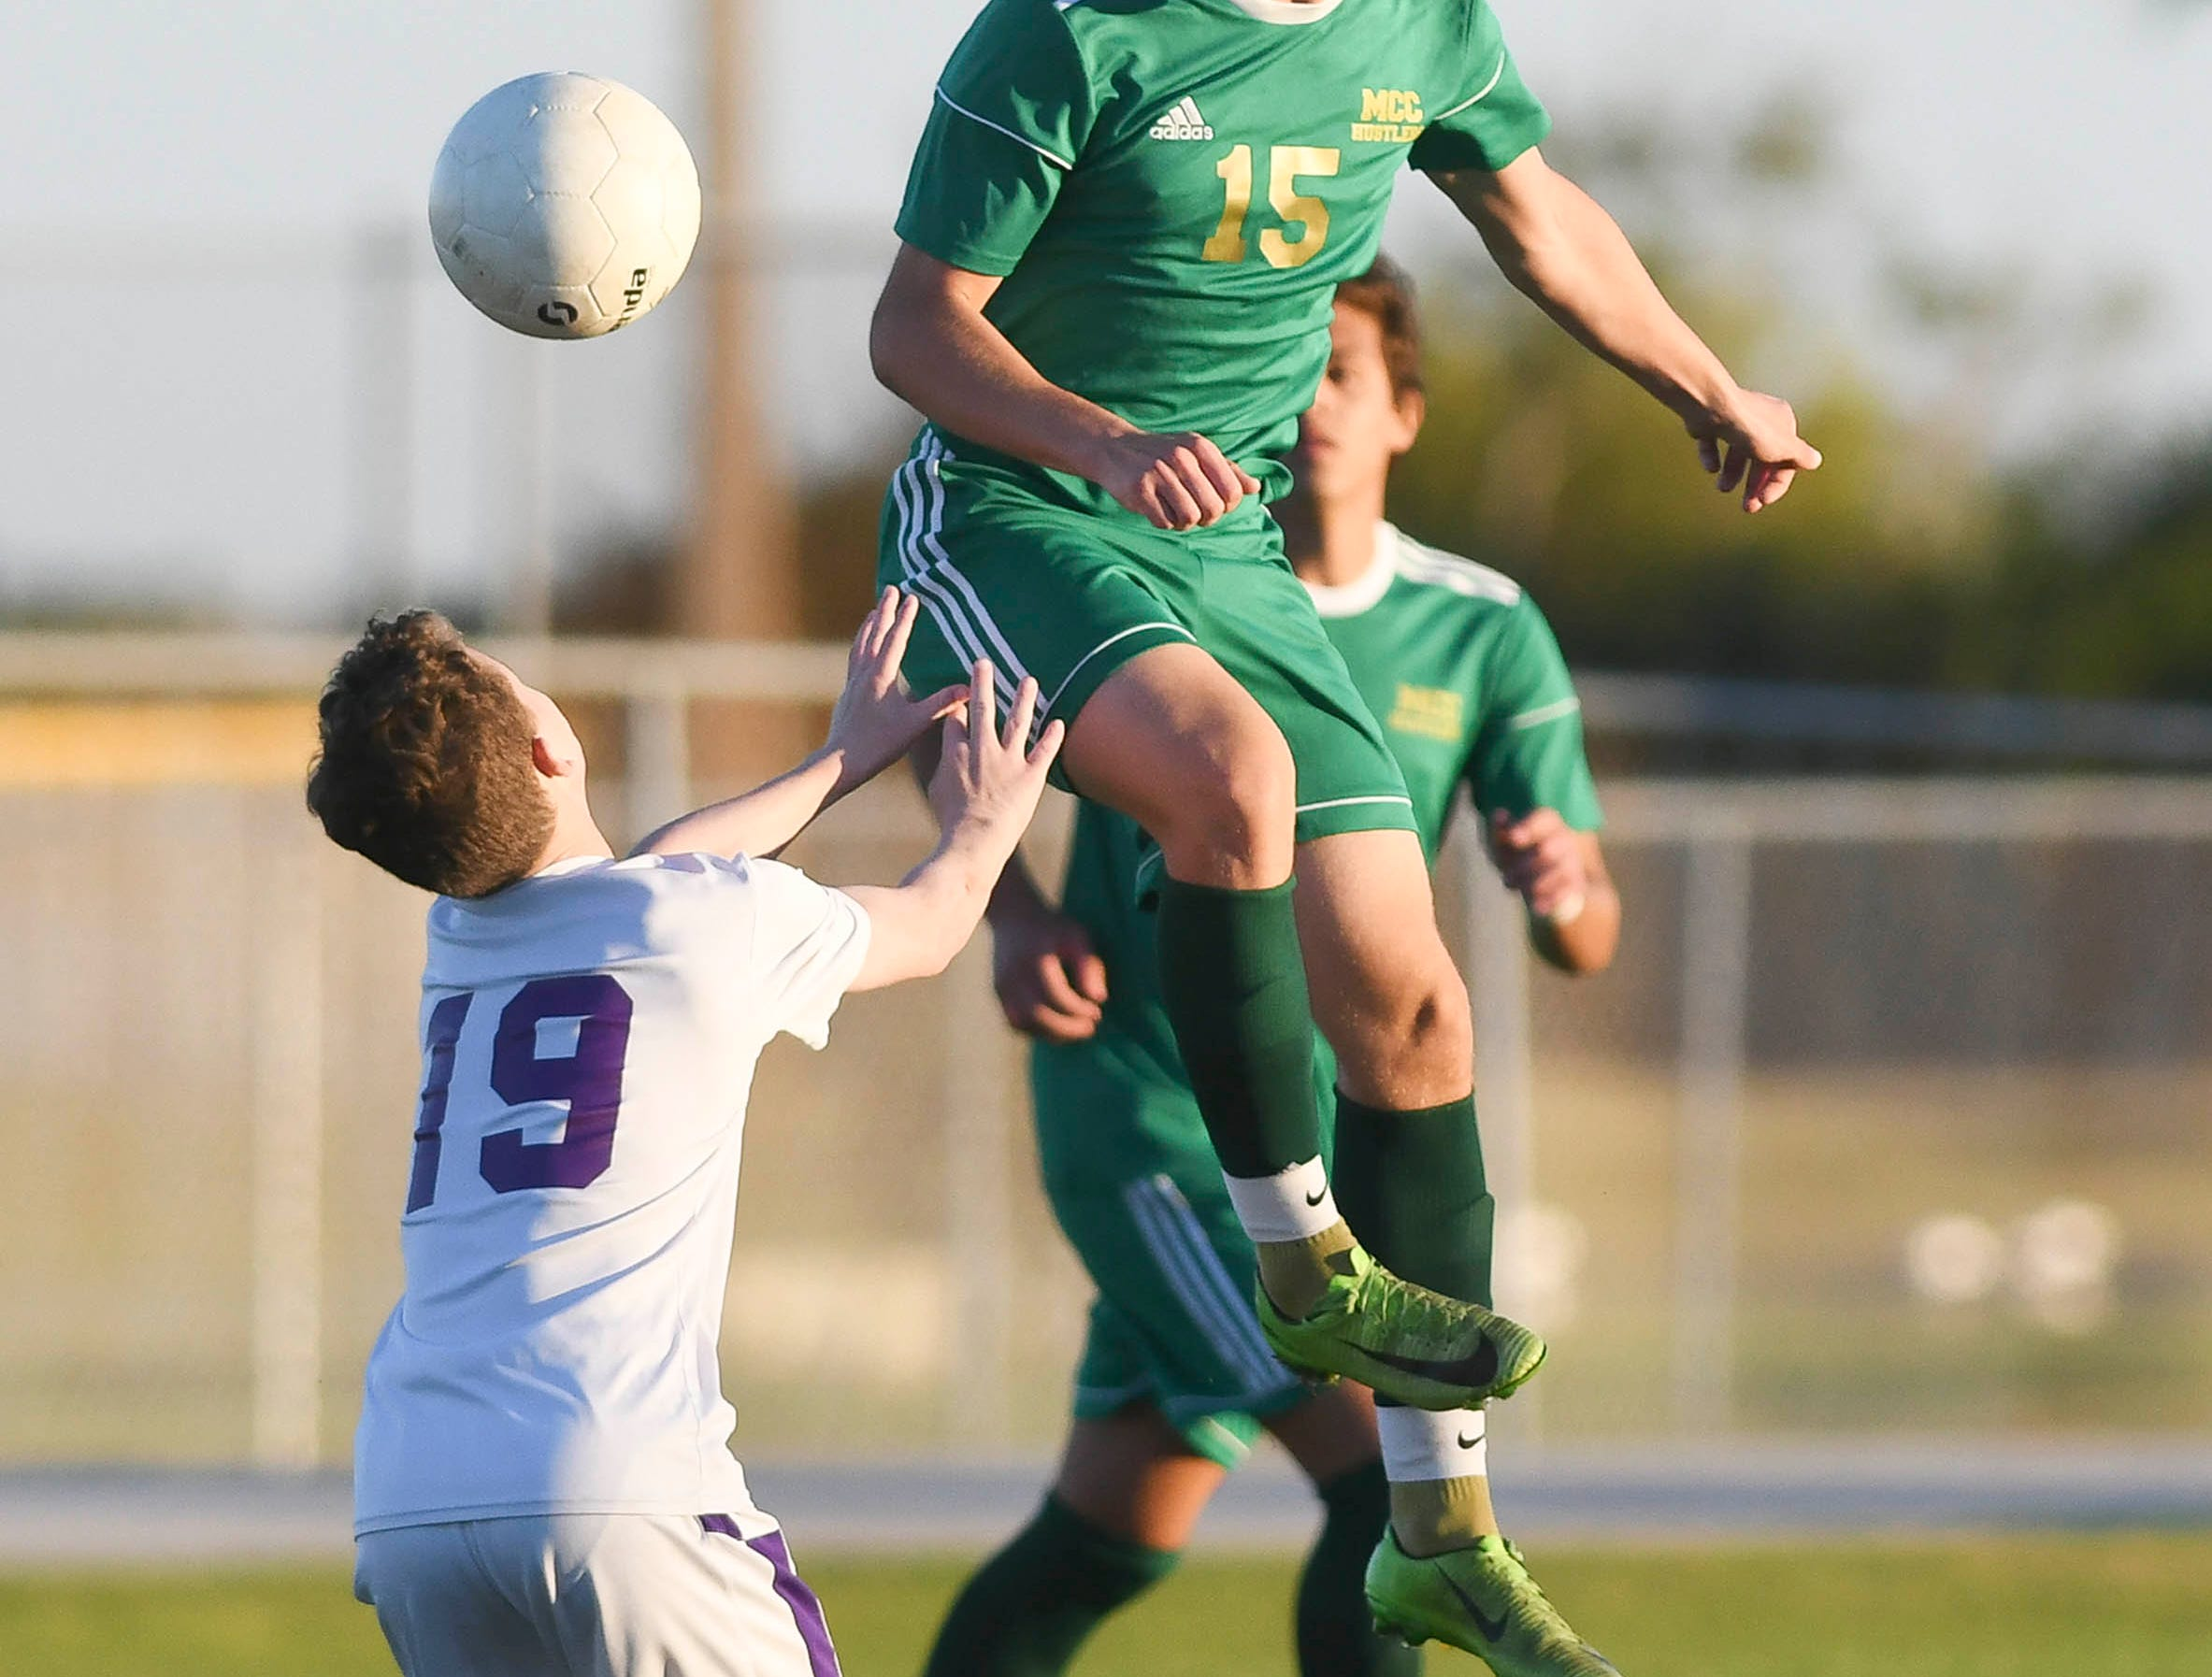 Ed Nekrasov of Melbourne Central Catholic directs the ball away from Colby Karpowich of Space Coast during Tuesday's District 8, Class 2A semifinal at Cocoa Beach High.